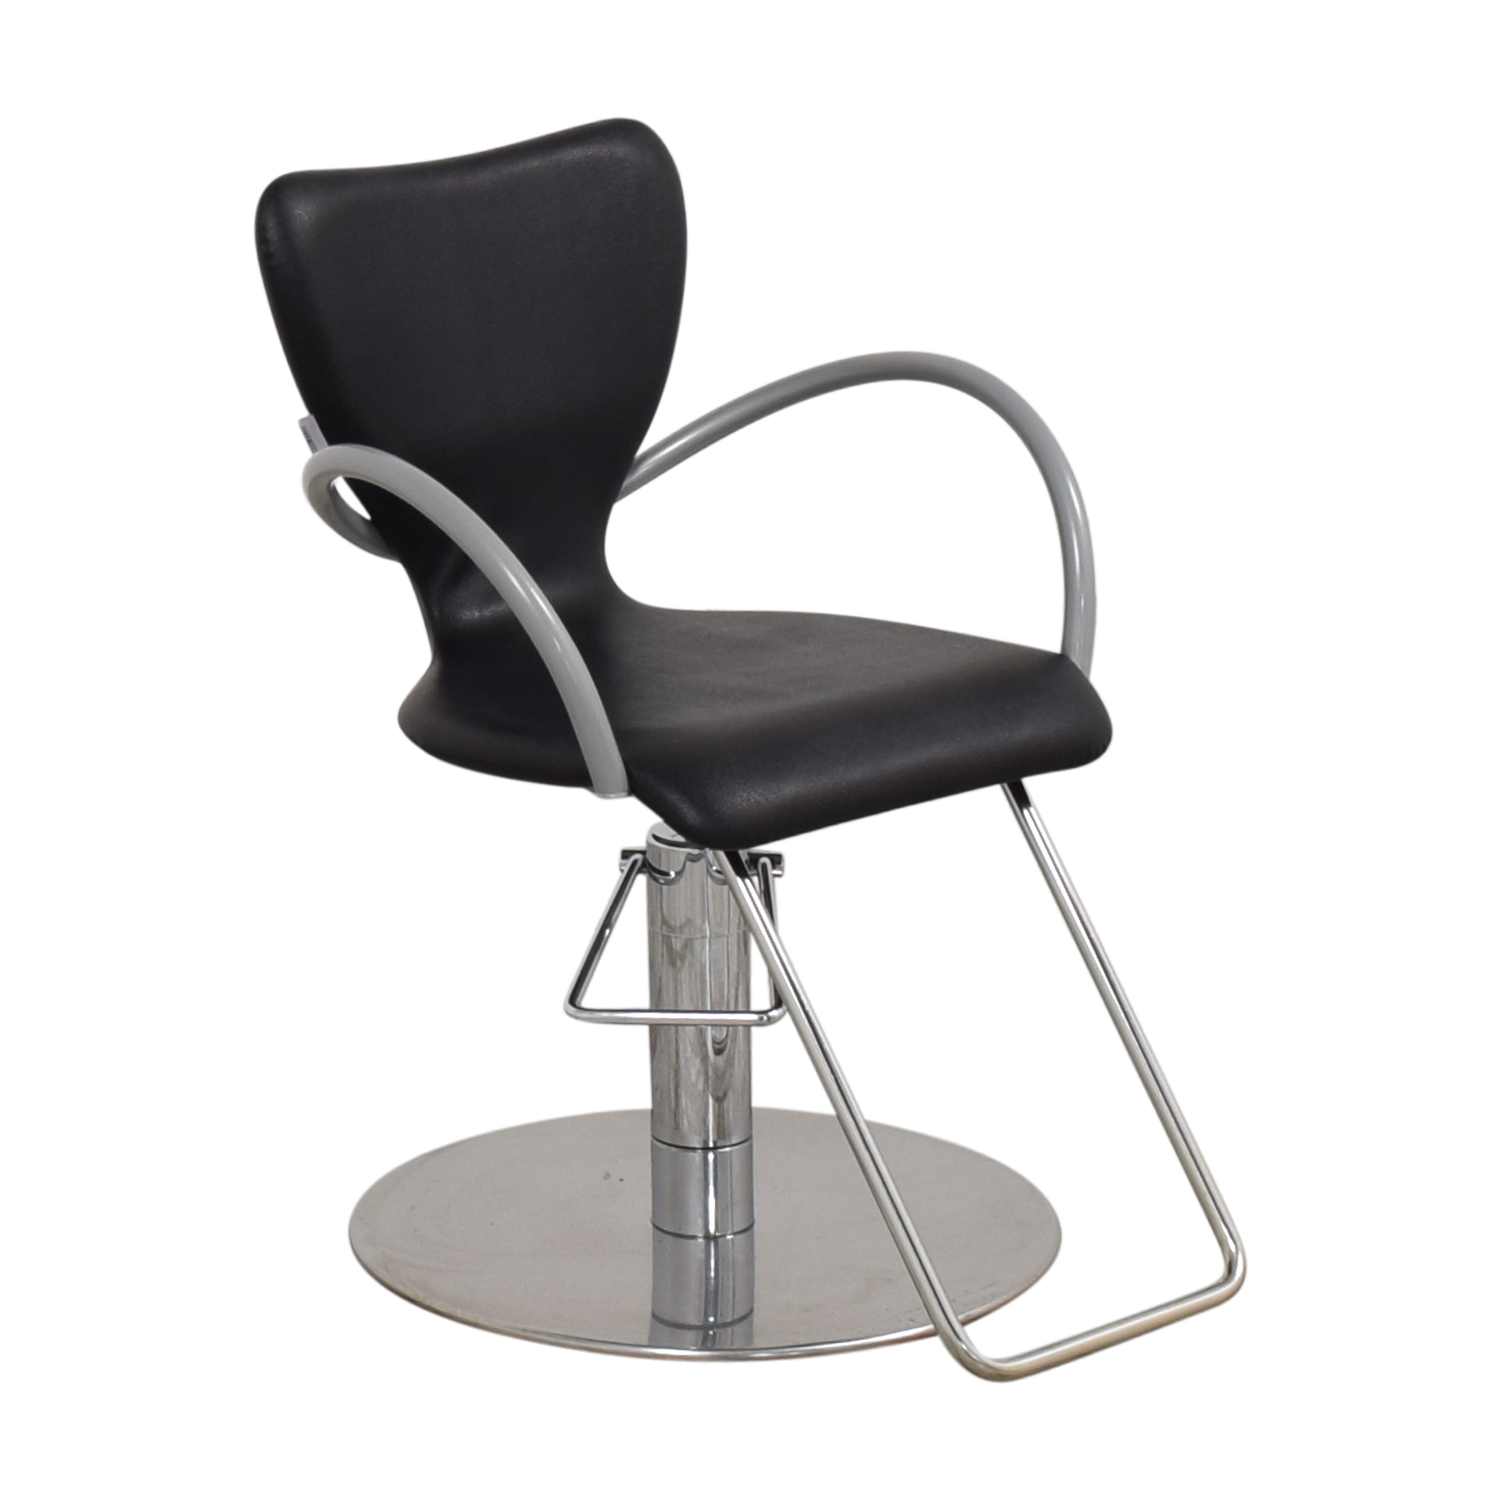 Gamma Bross Folda Parrot Styling Chair / Chairs